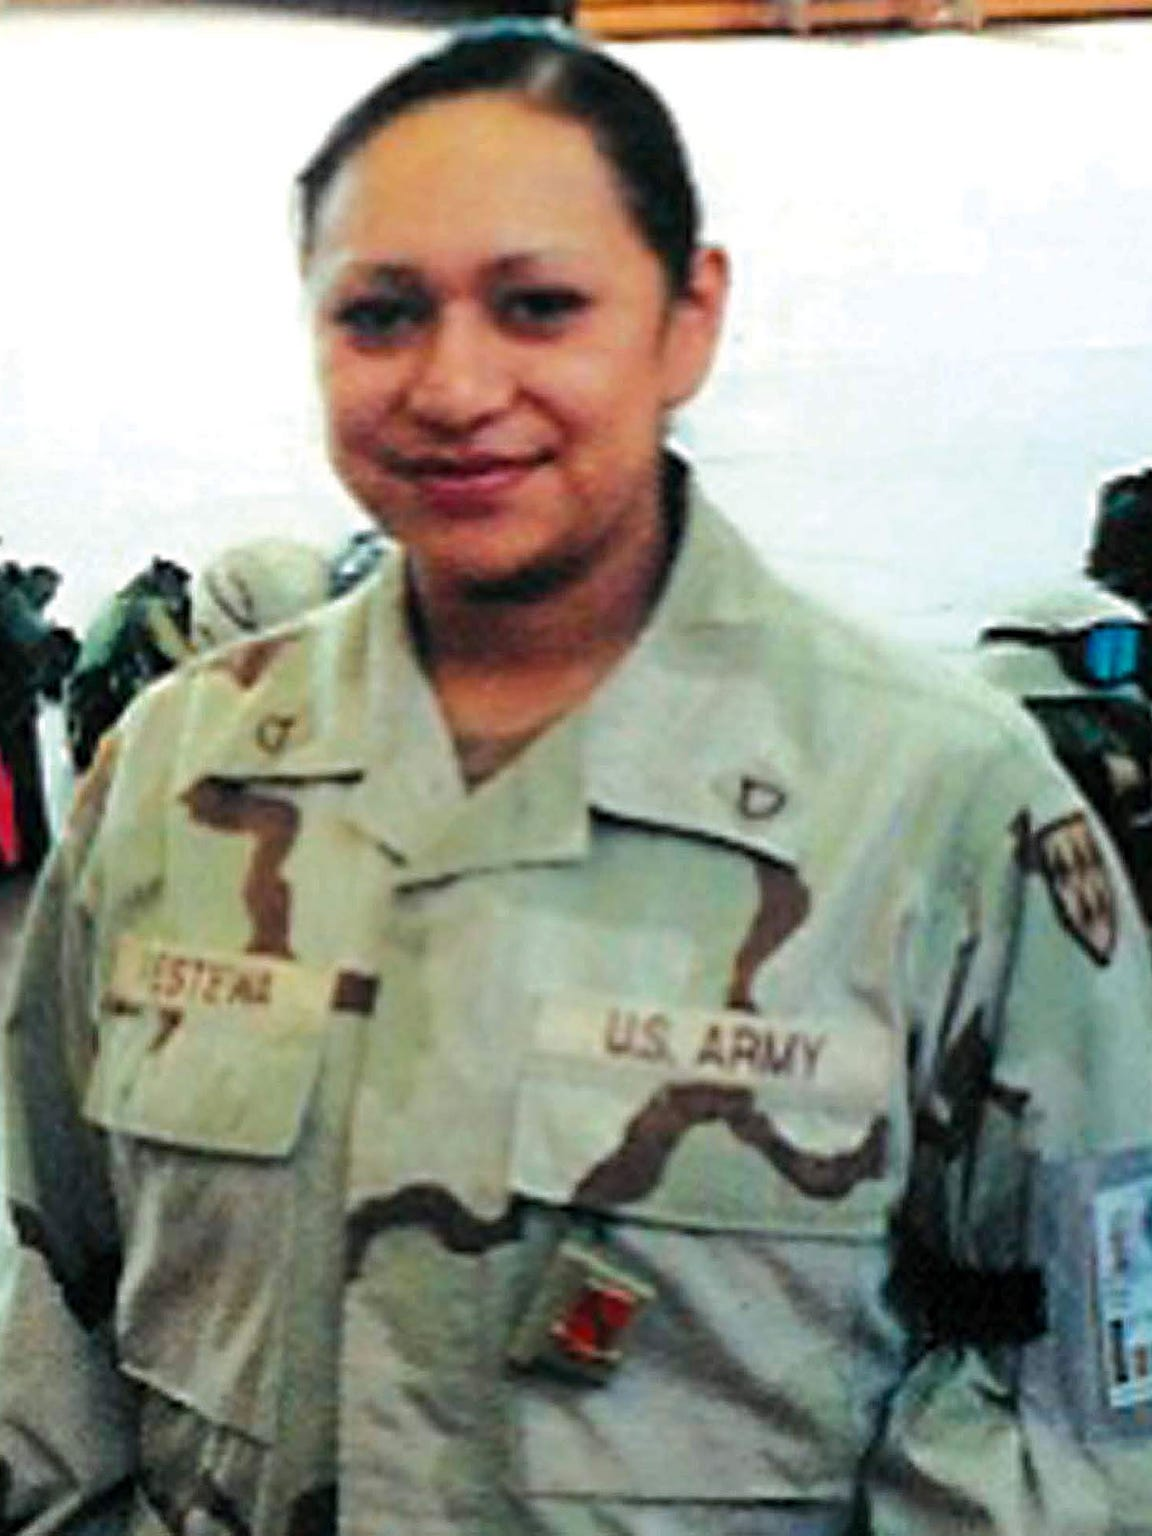 Lori Piestewa: Lori Piestewa, who in 2003 in southern Iraq became the first Native American woman to die in combat, was from Tuba City.  Piestewa Peak in north-central Phoenix was renamed in her honor shortly after her death.